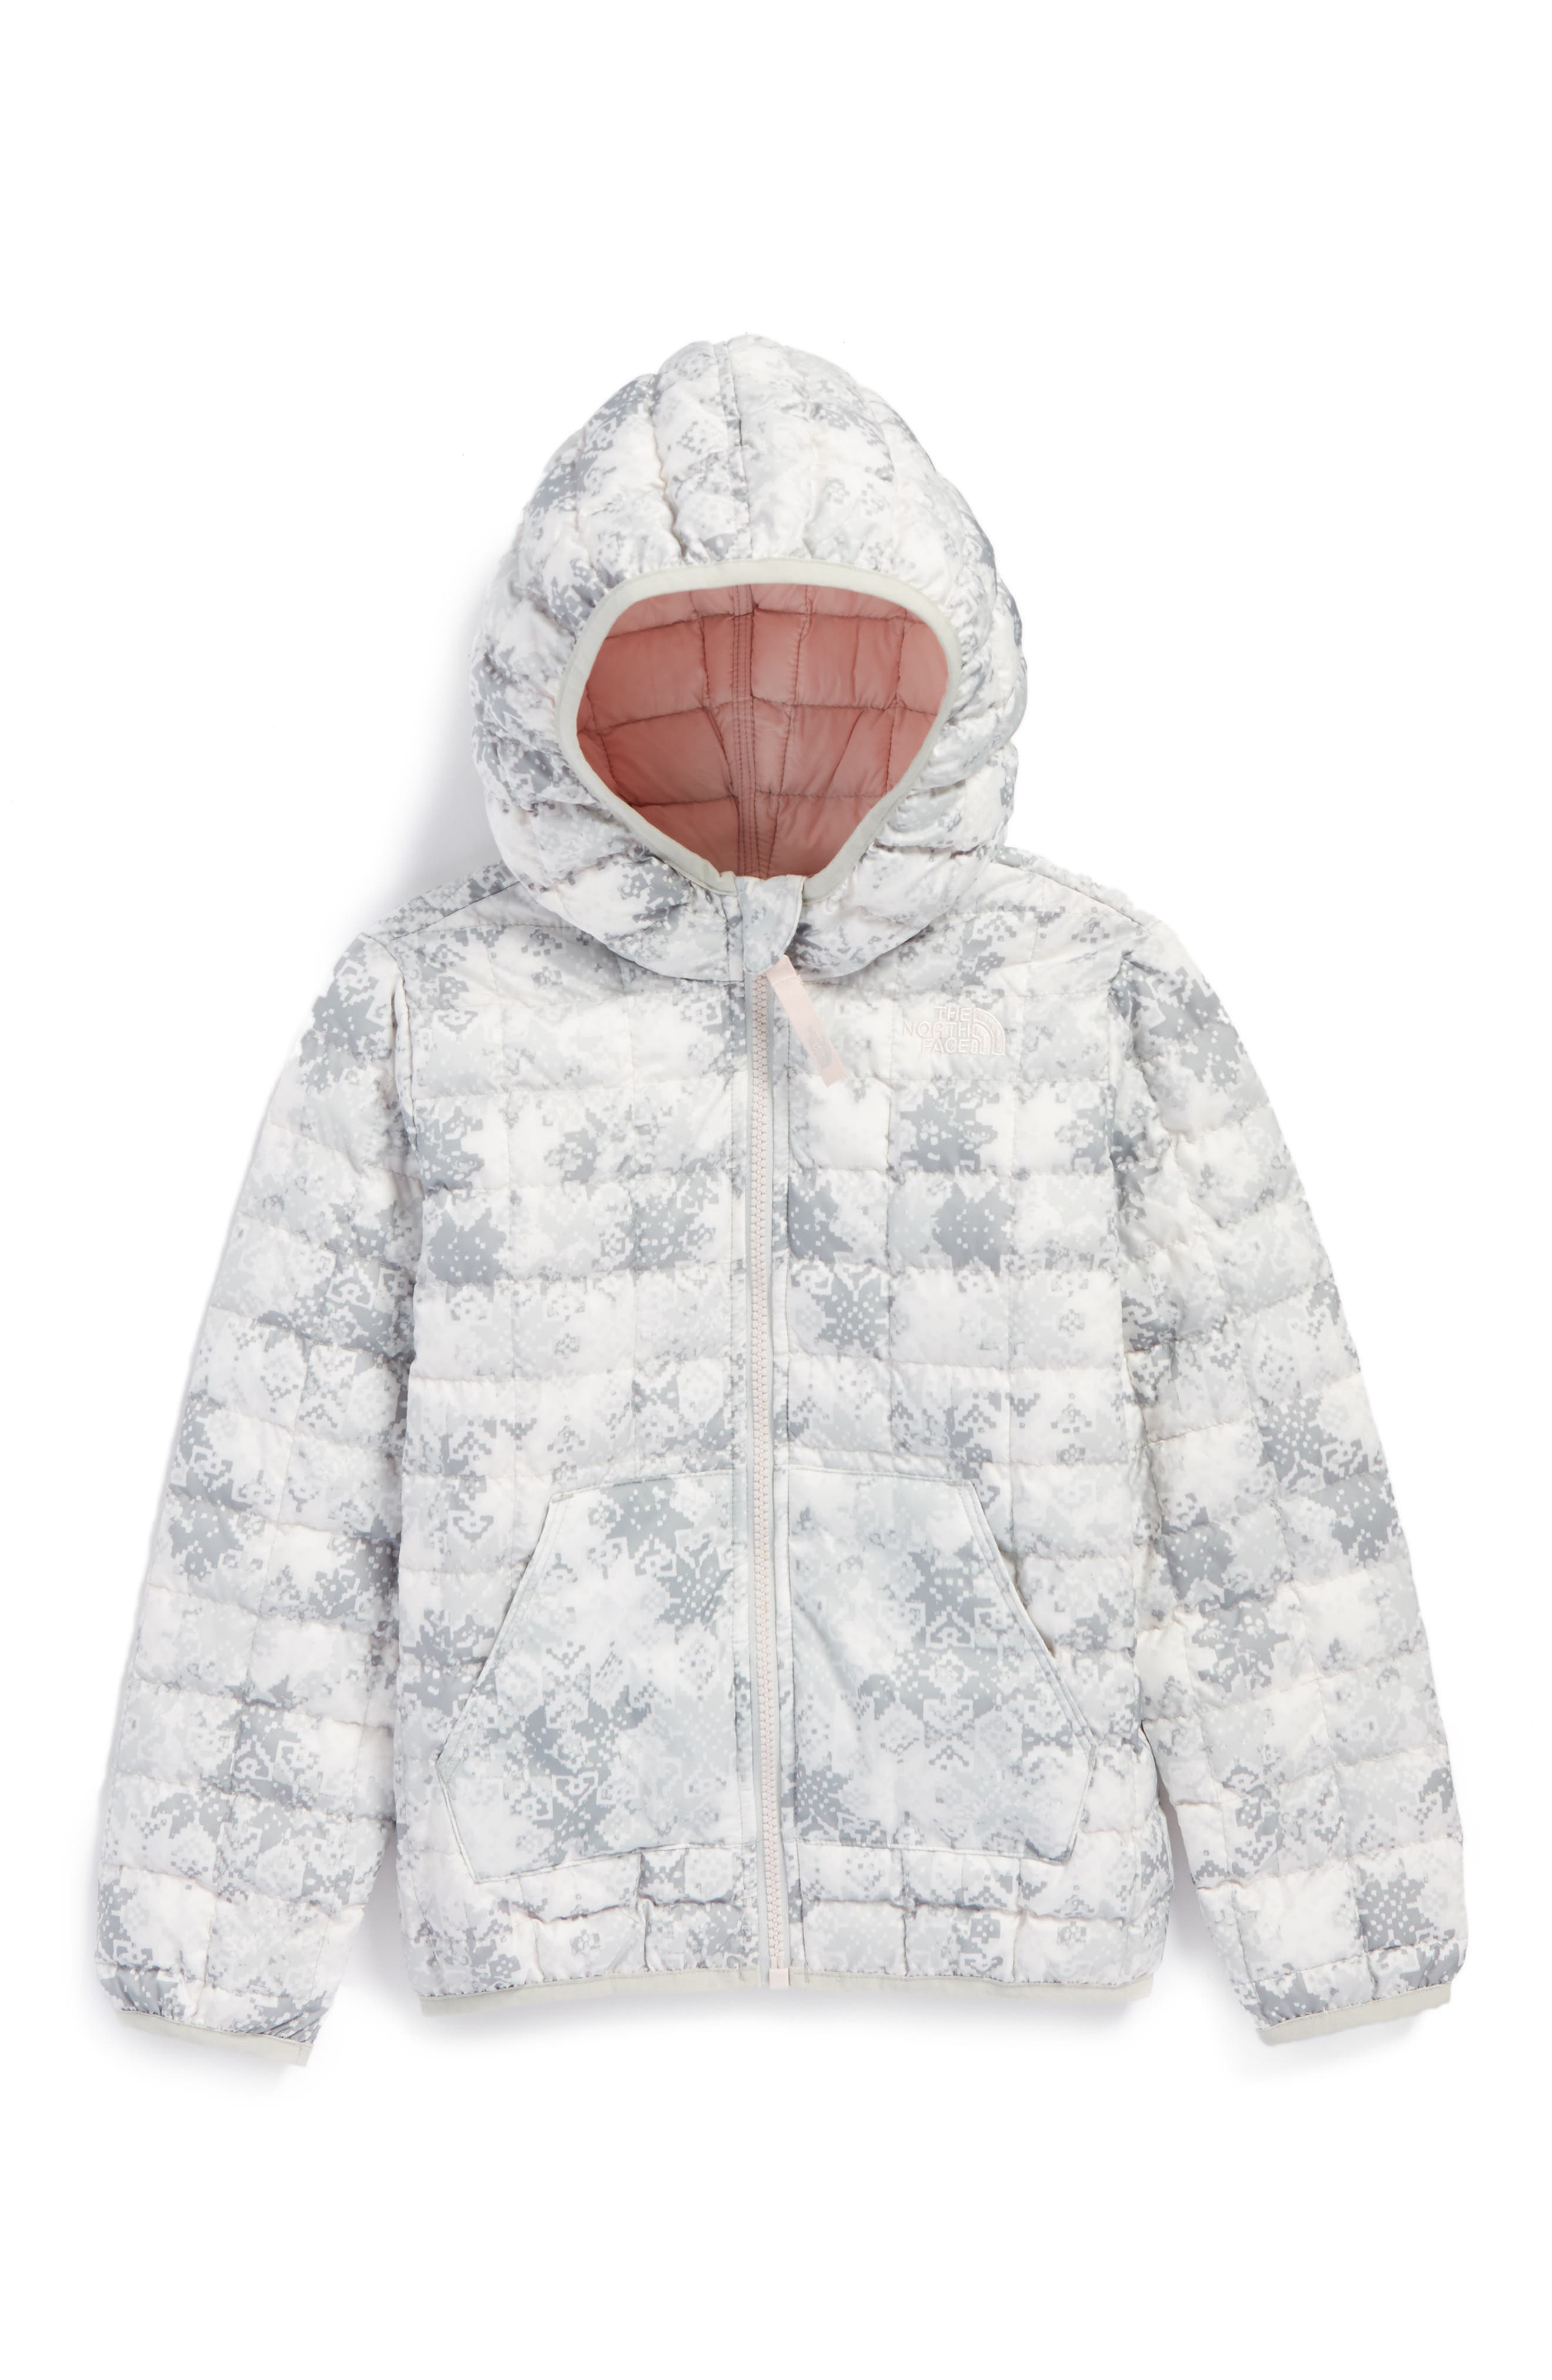 THE NORTH FACE,                             ThermoBall<sup>™</sup> PrimaLoft<sup>®</sup> Hooded Jacket,                             Main thumbnail 1, color,                             020